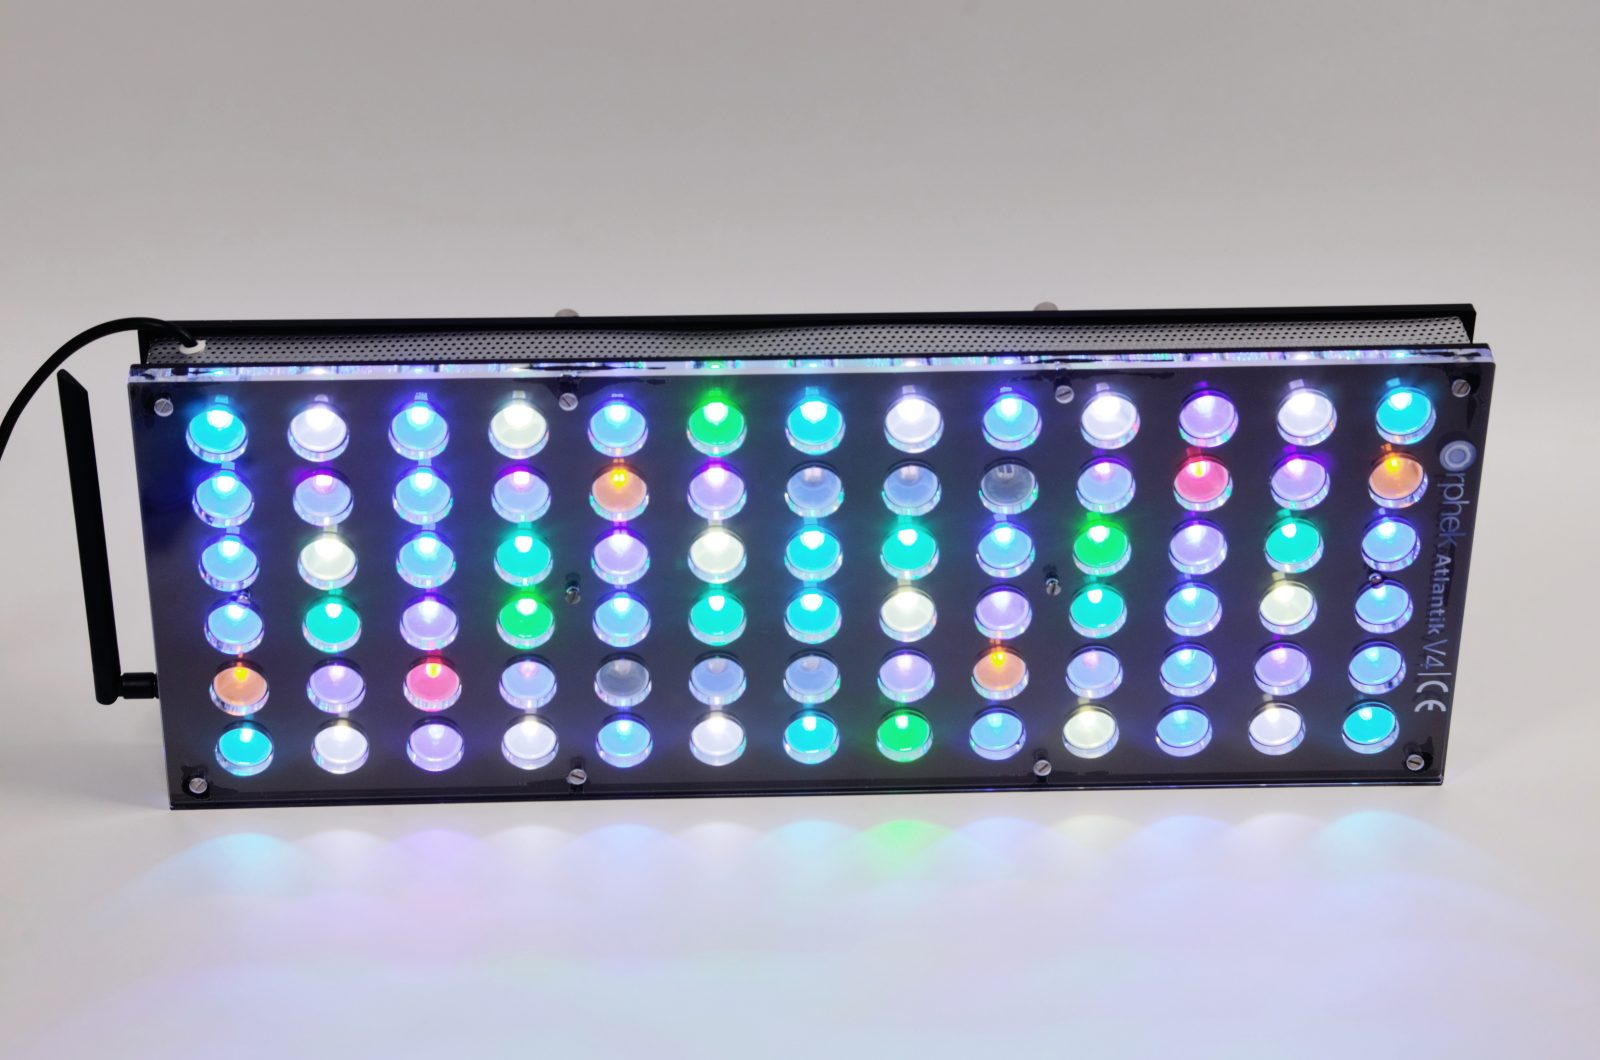 Orphek-Aquarium-LED-Lighting-Reef-Atlantik-V4-light-on-channel 1+2+3+4